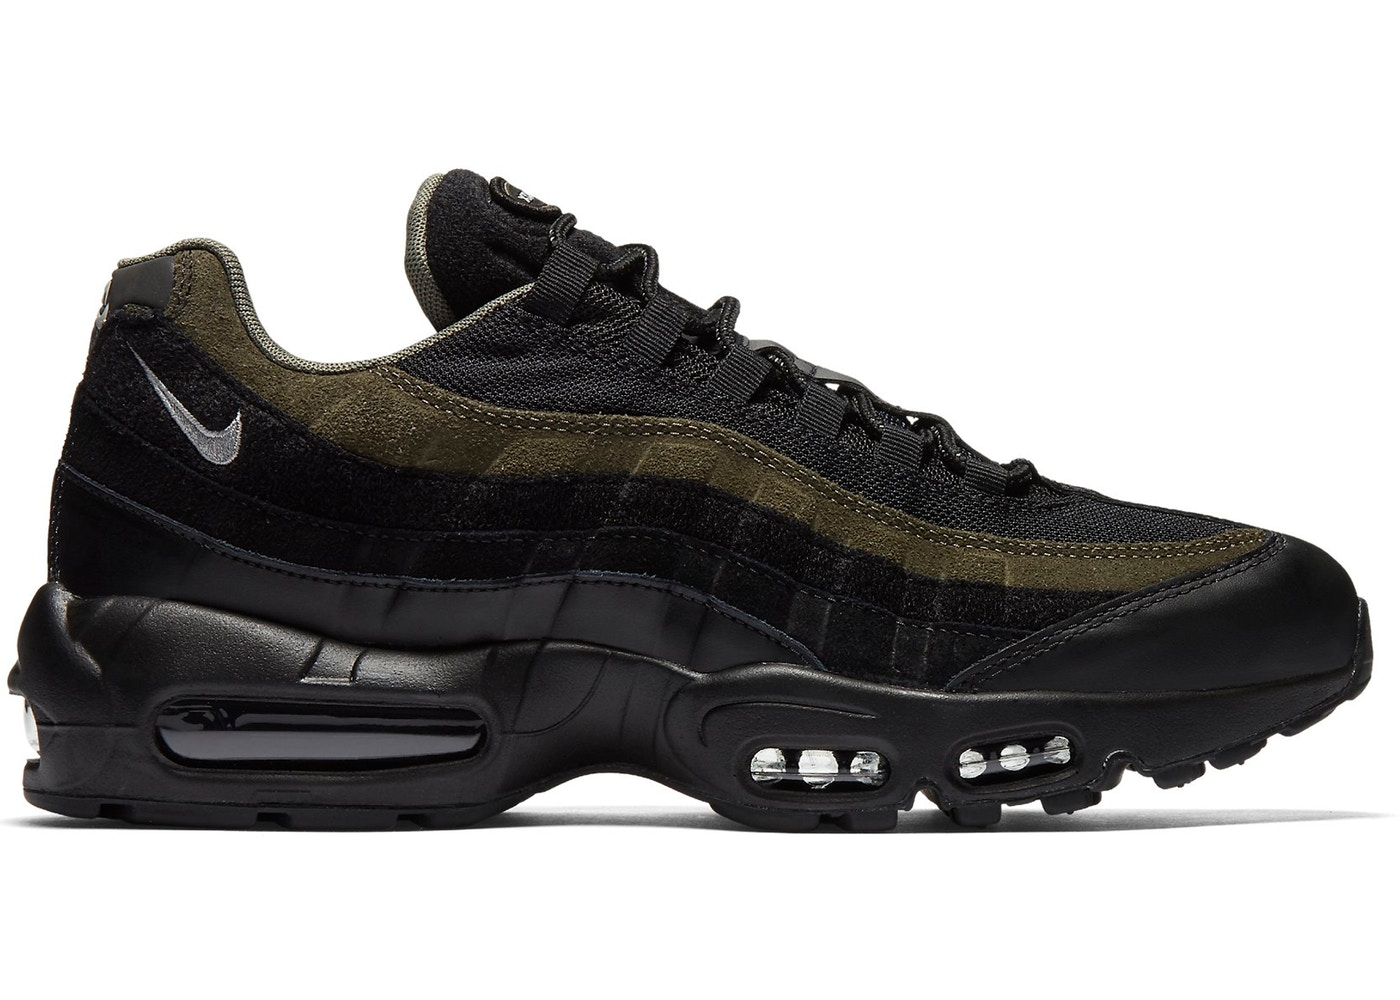 8c103d2f30 Air Max 95 HAL Black Olive - AH8444-001